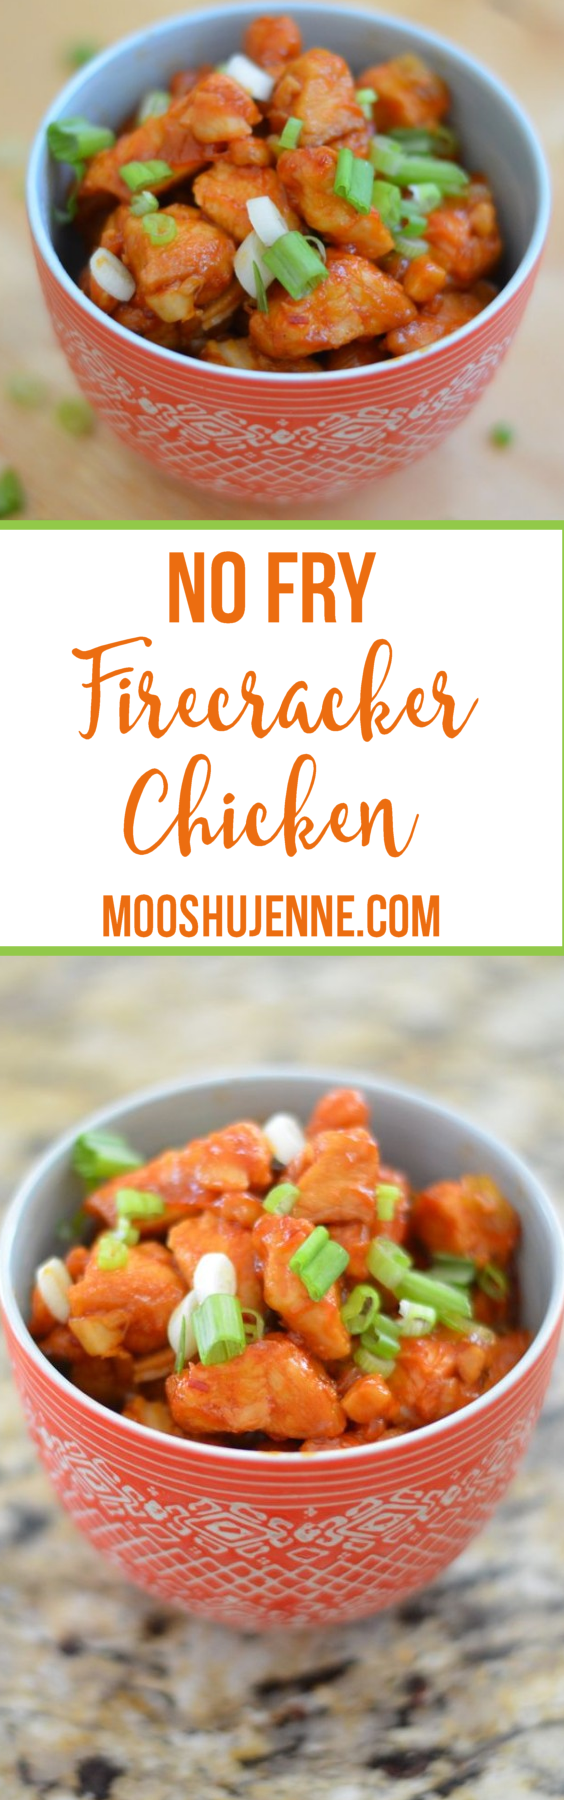 No Fry Firecracker Chicken comes with a simple sauce made from ingredients you should already have on hand in your fridge door.